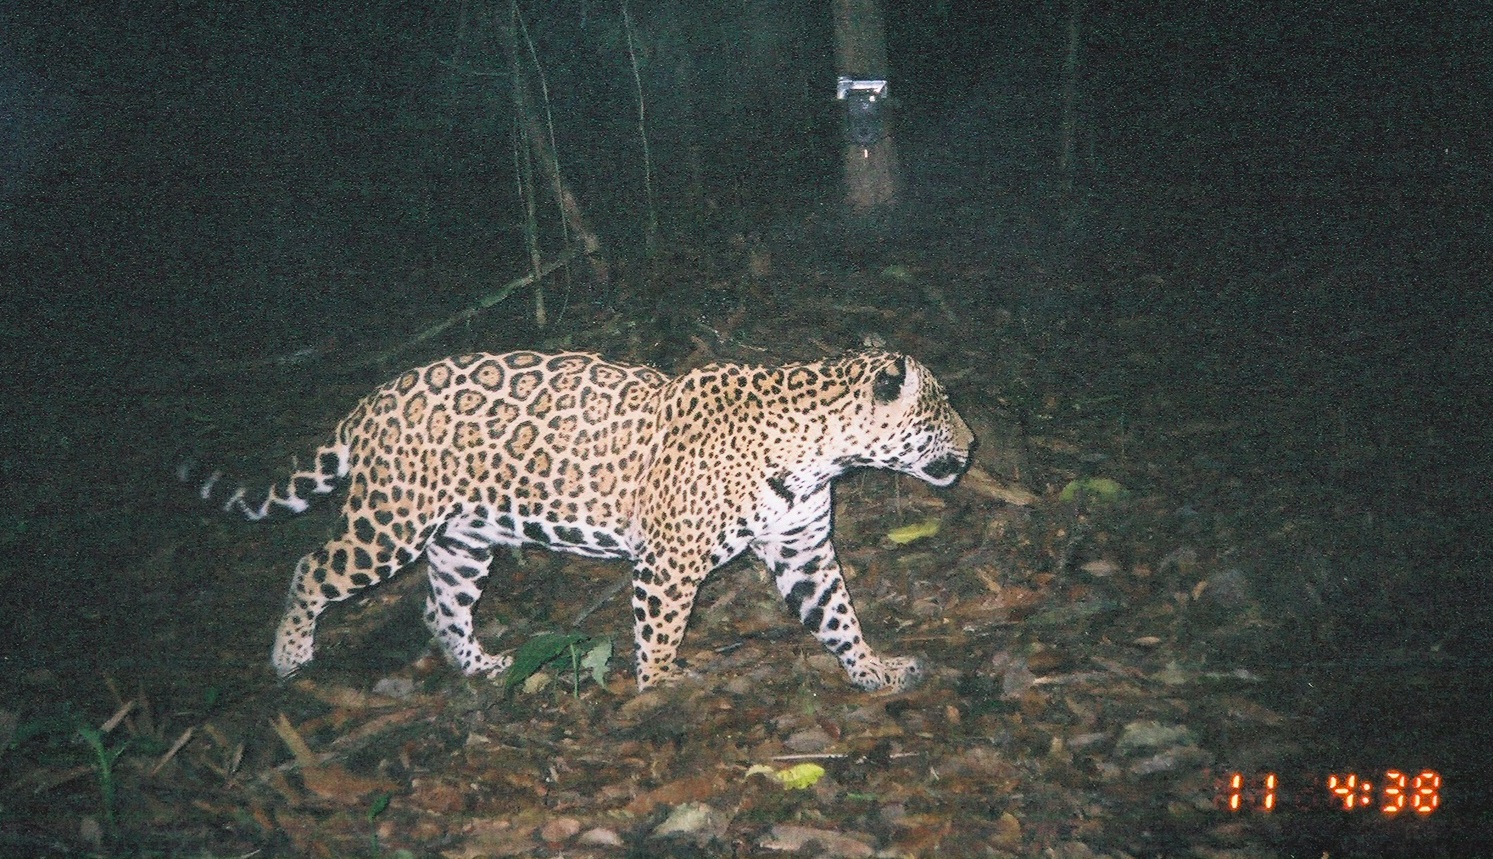 Camera traps have increasingly been used to monitor nocturnal or cryptic wildlife, such as this jaguar roaming the rainforest, or intruders into natural areas. As technologies such as remote cameras become easier to use, more rugged, and more affordable, their potential audience increases.